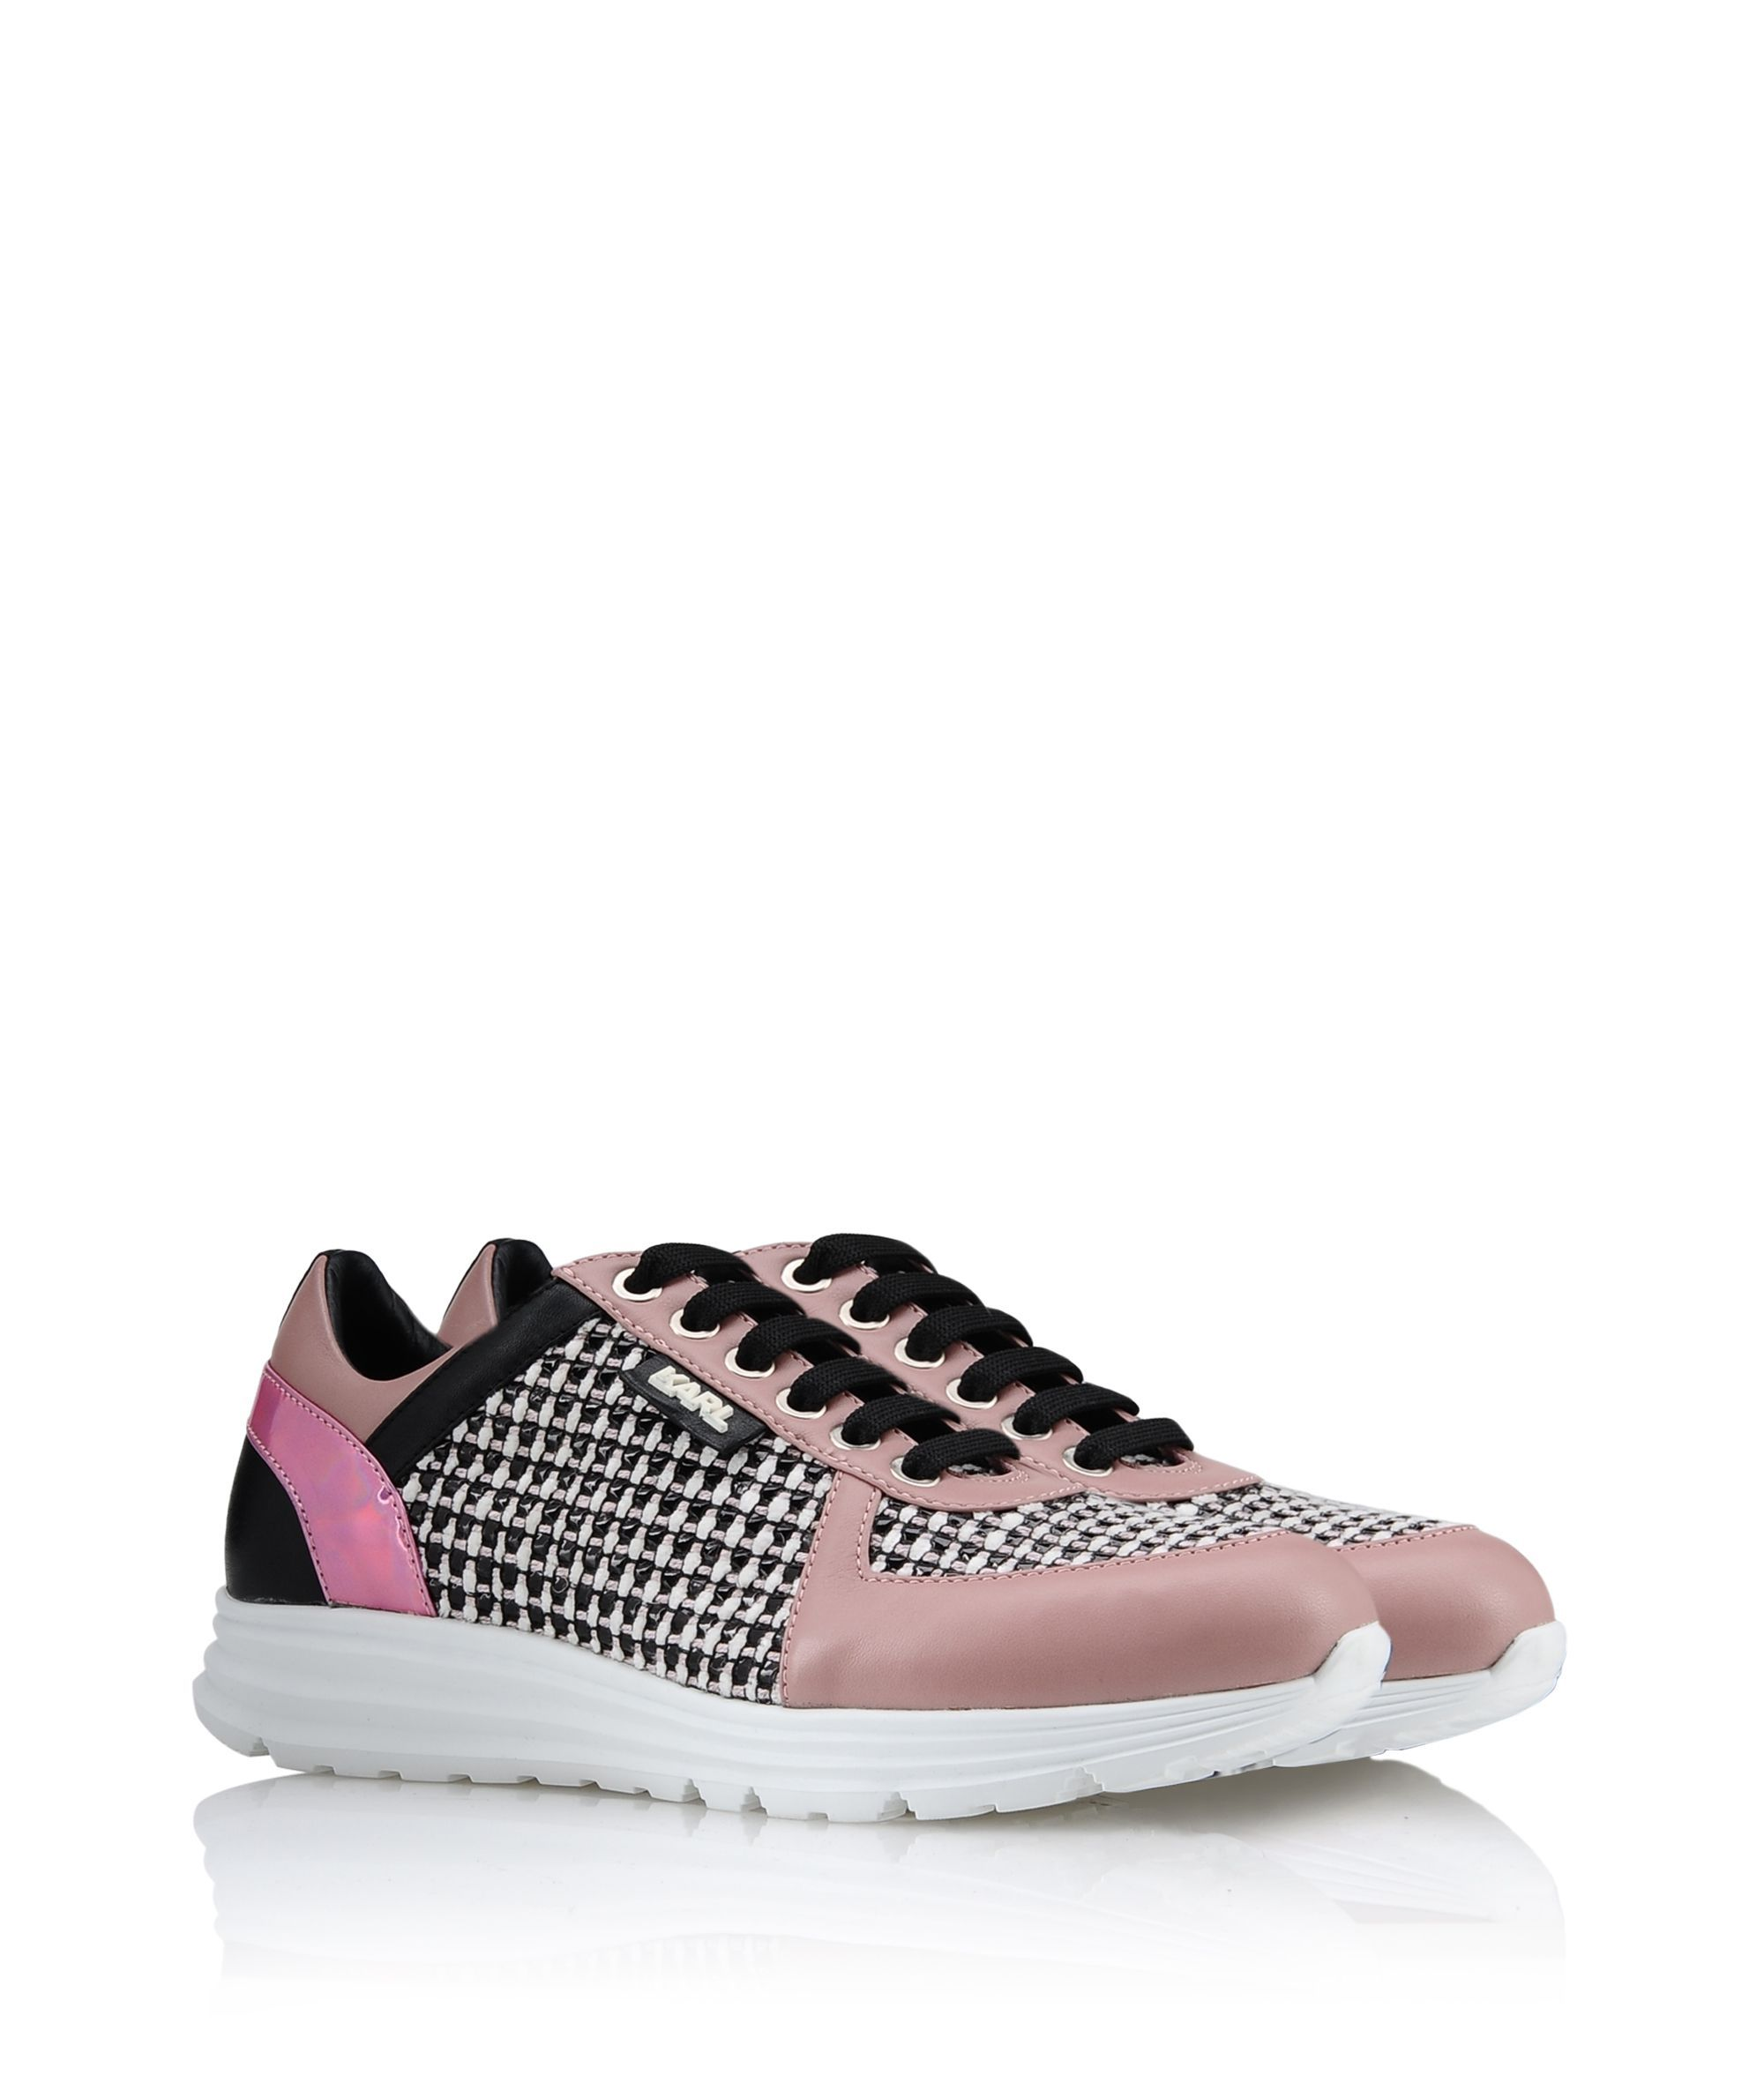 Are you looking for KARL LAGERFELD women's K/SNEAKER TWEED? Discover all the details on KARL.COM. Fast delivery and secure payment.